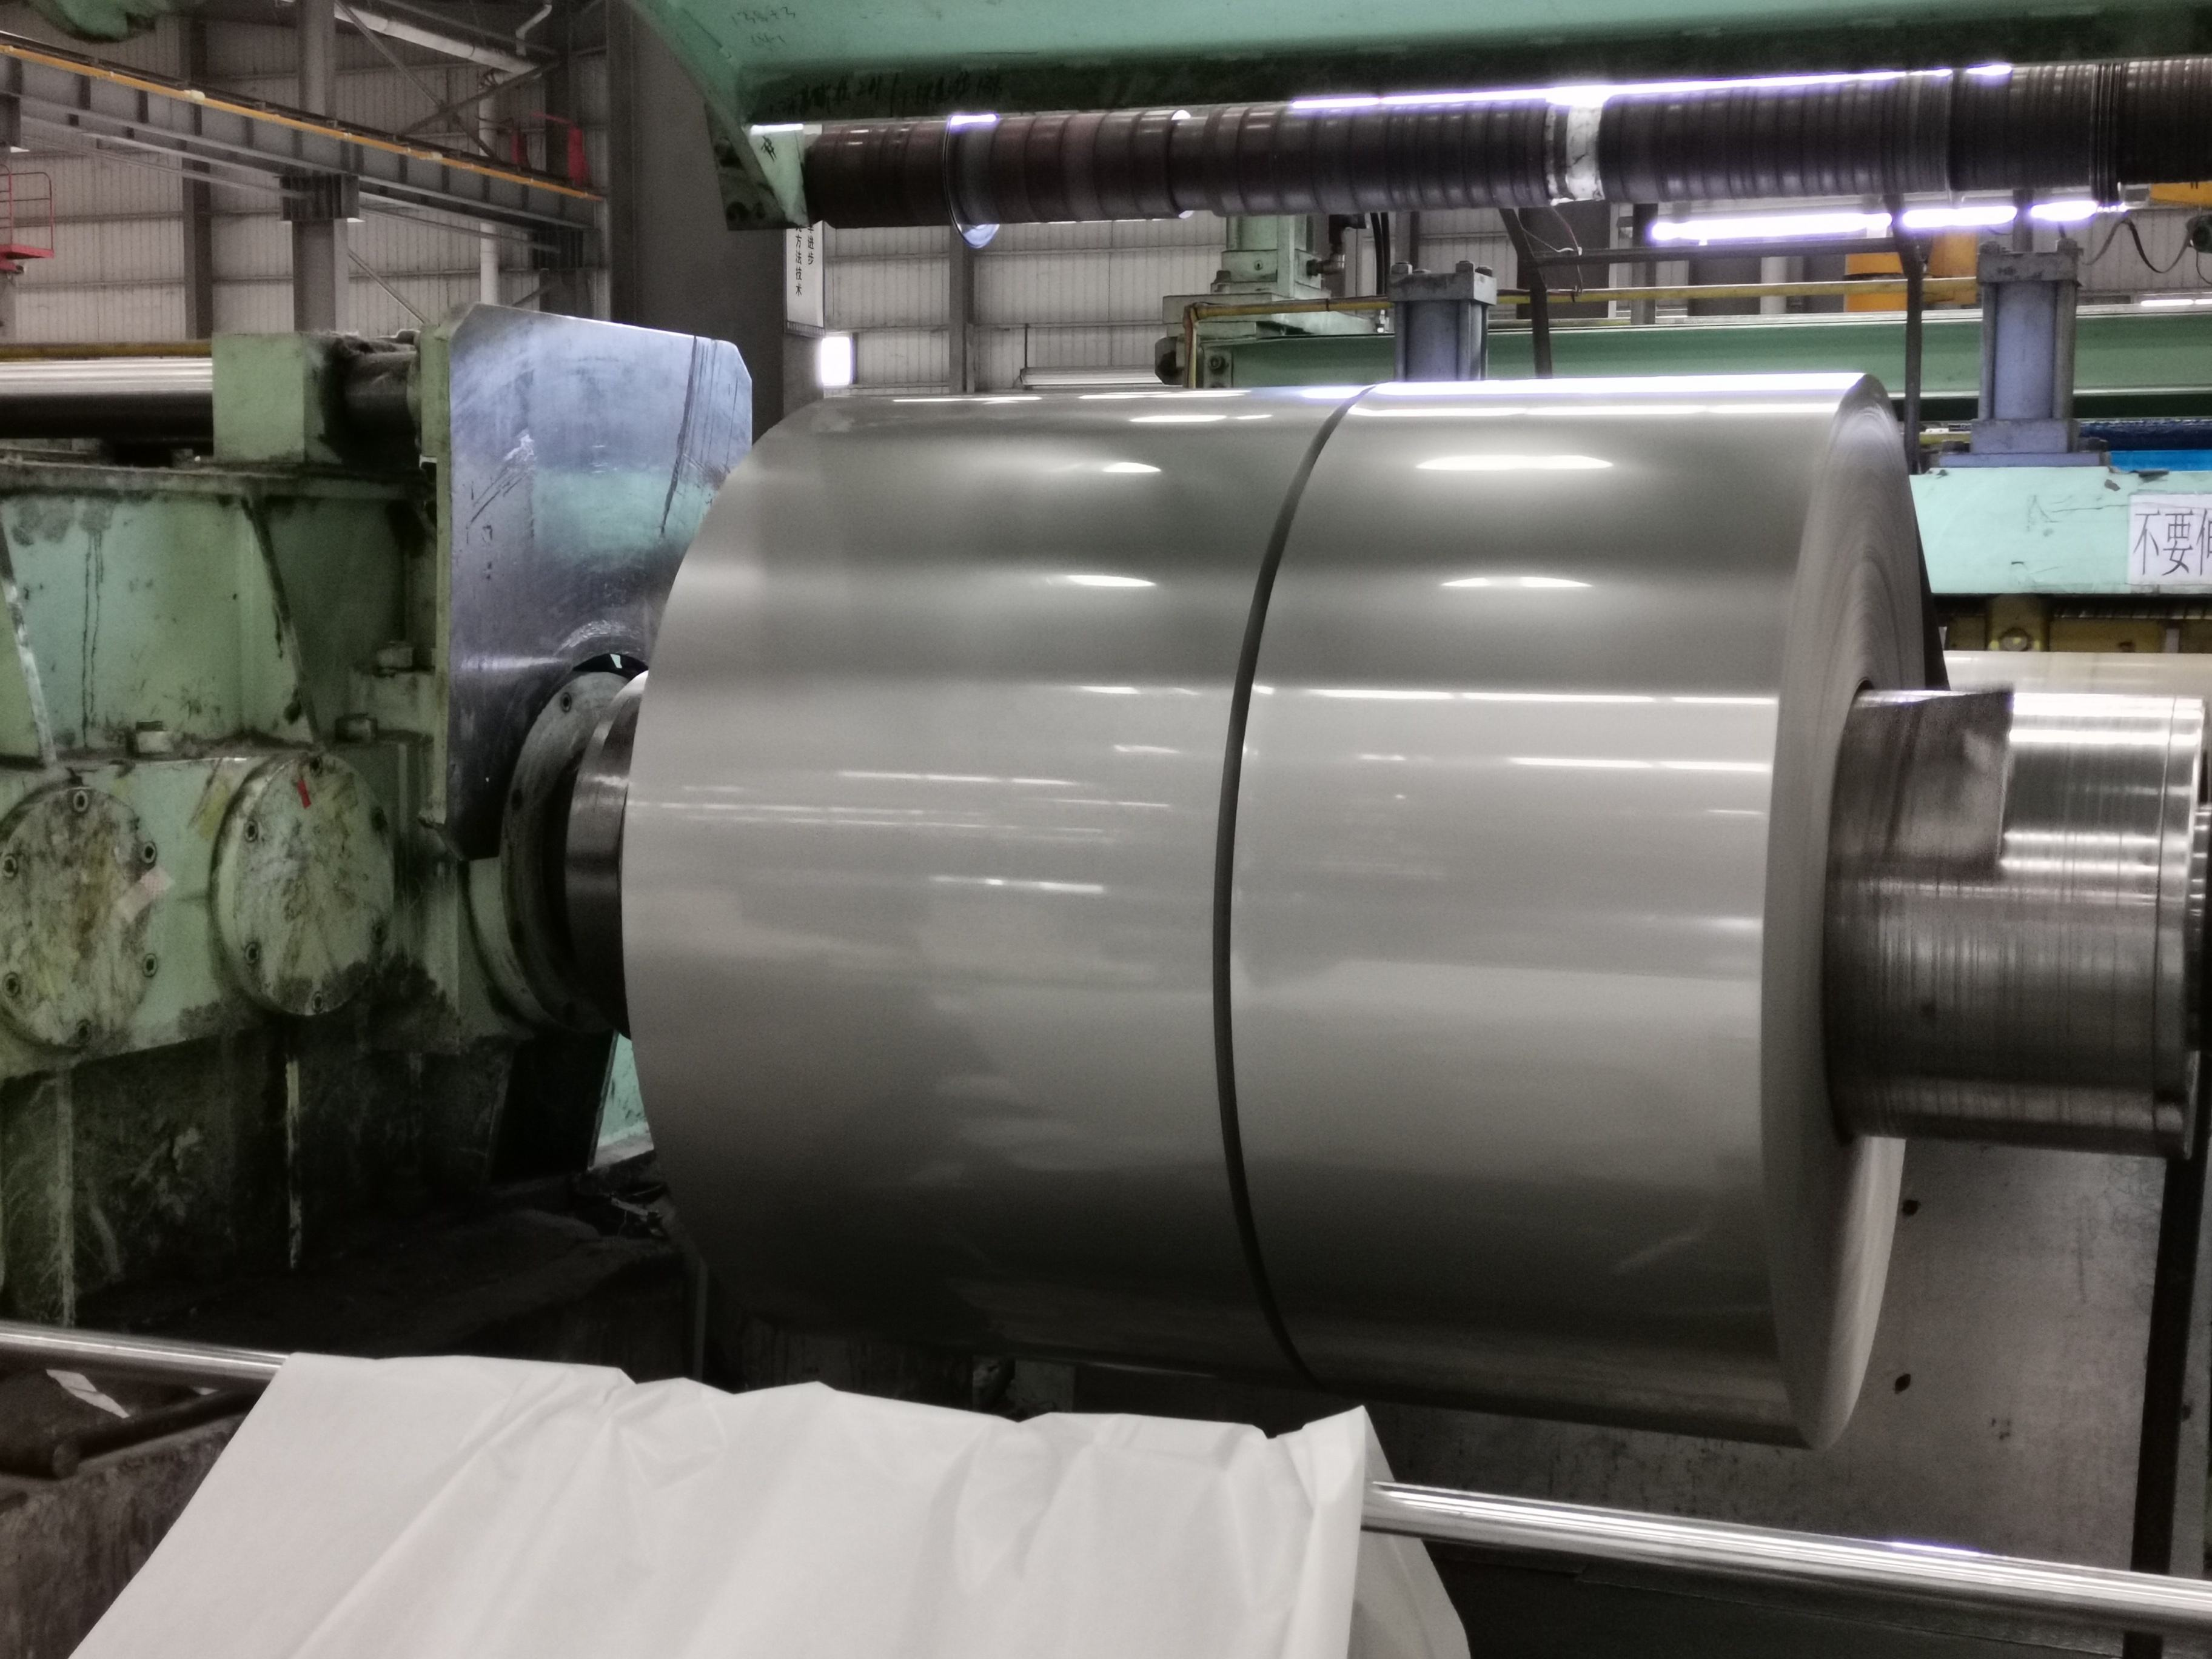 200 Series Coil Stainless 201 Harga SS304 Inox SS Coil Price Per Kg 2B BA SUS AISI Grade 201 304L 304 Stainless Steel